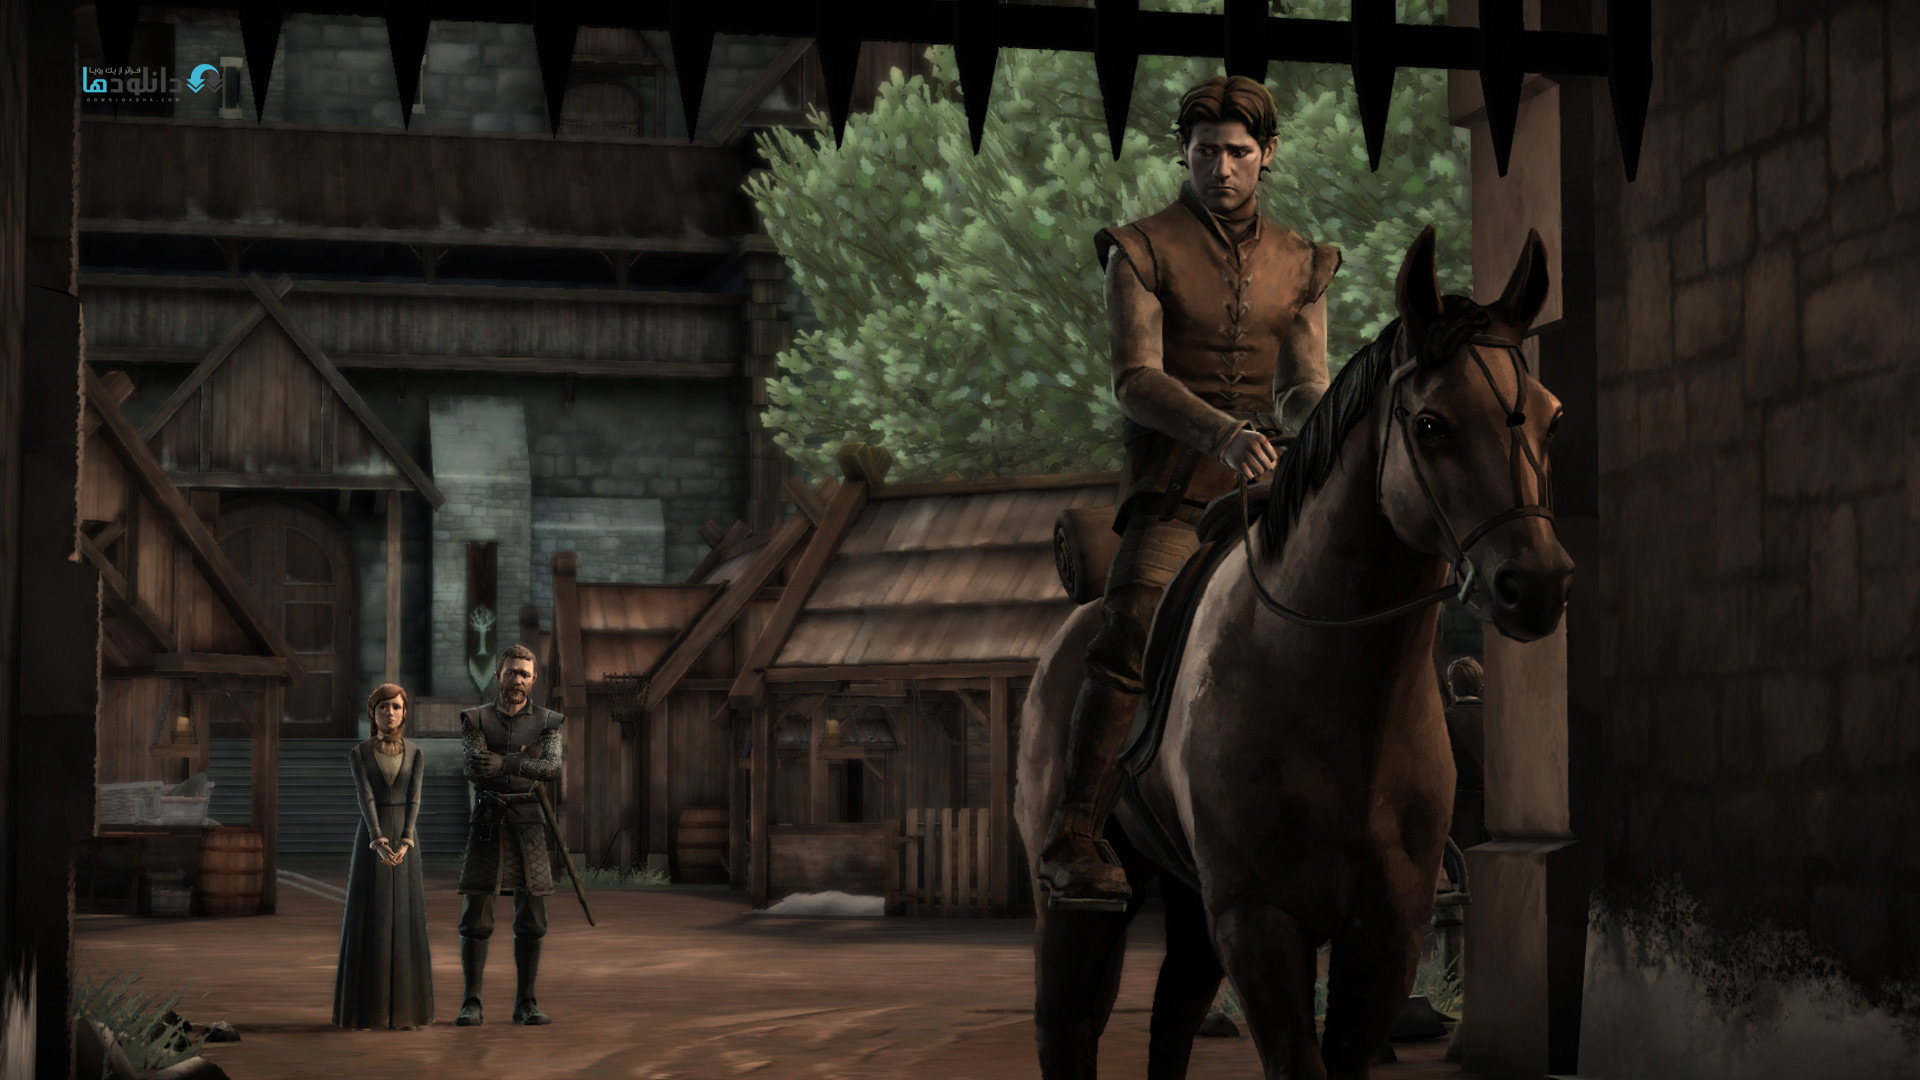 http://img5.downloadha.com/hosein/Game/December%202014/02/Game-of-Thrones-A-Telltale-Games-Series-screenshots-05-large.jpg